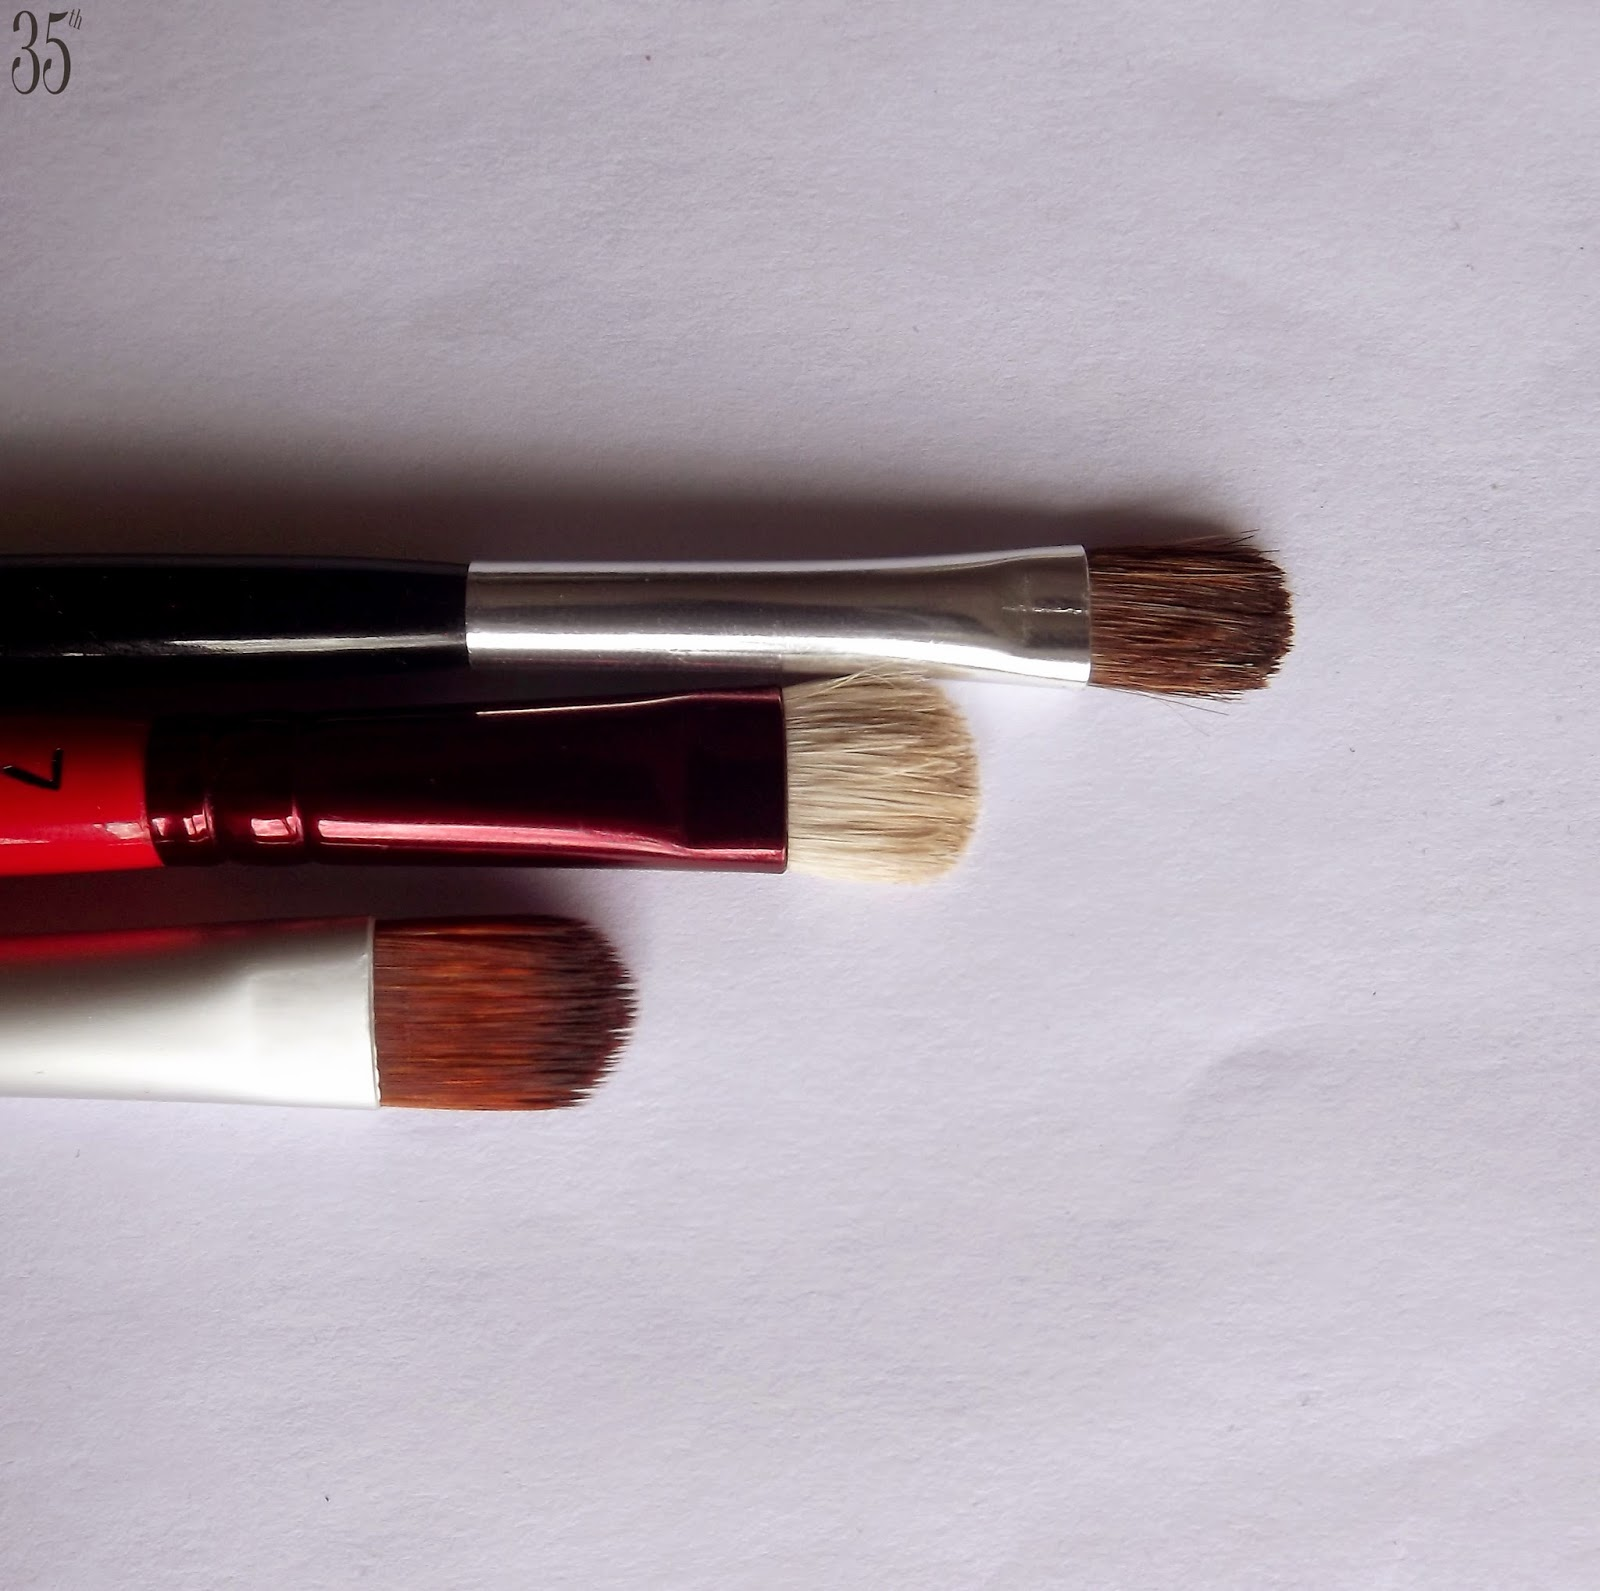 Beijin Make-up brushes comparison